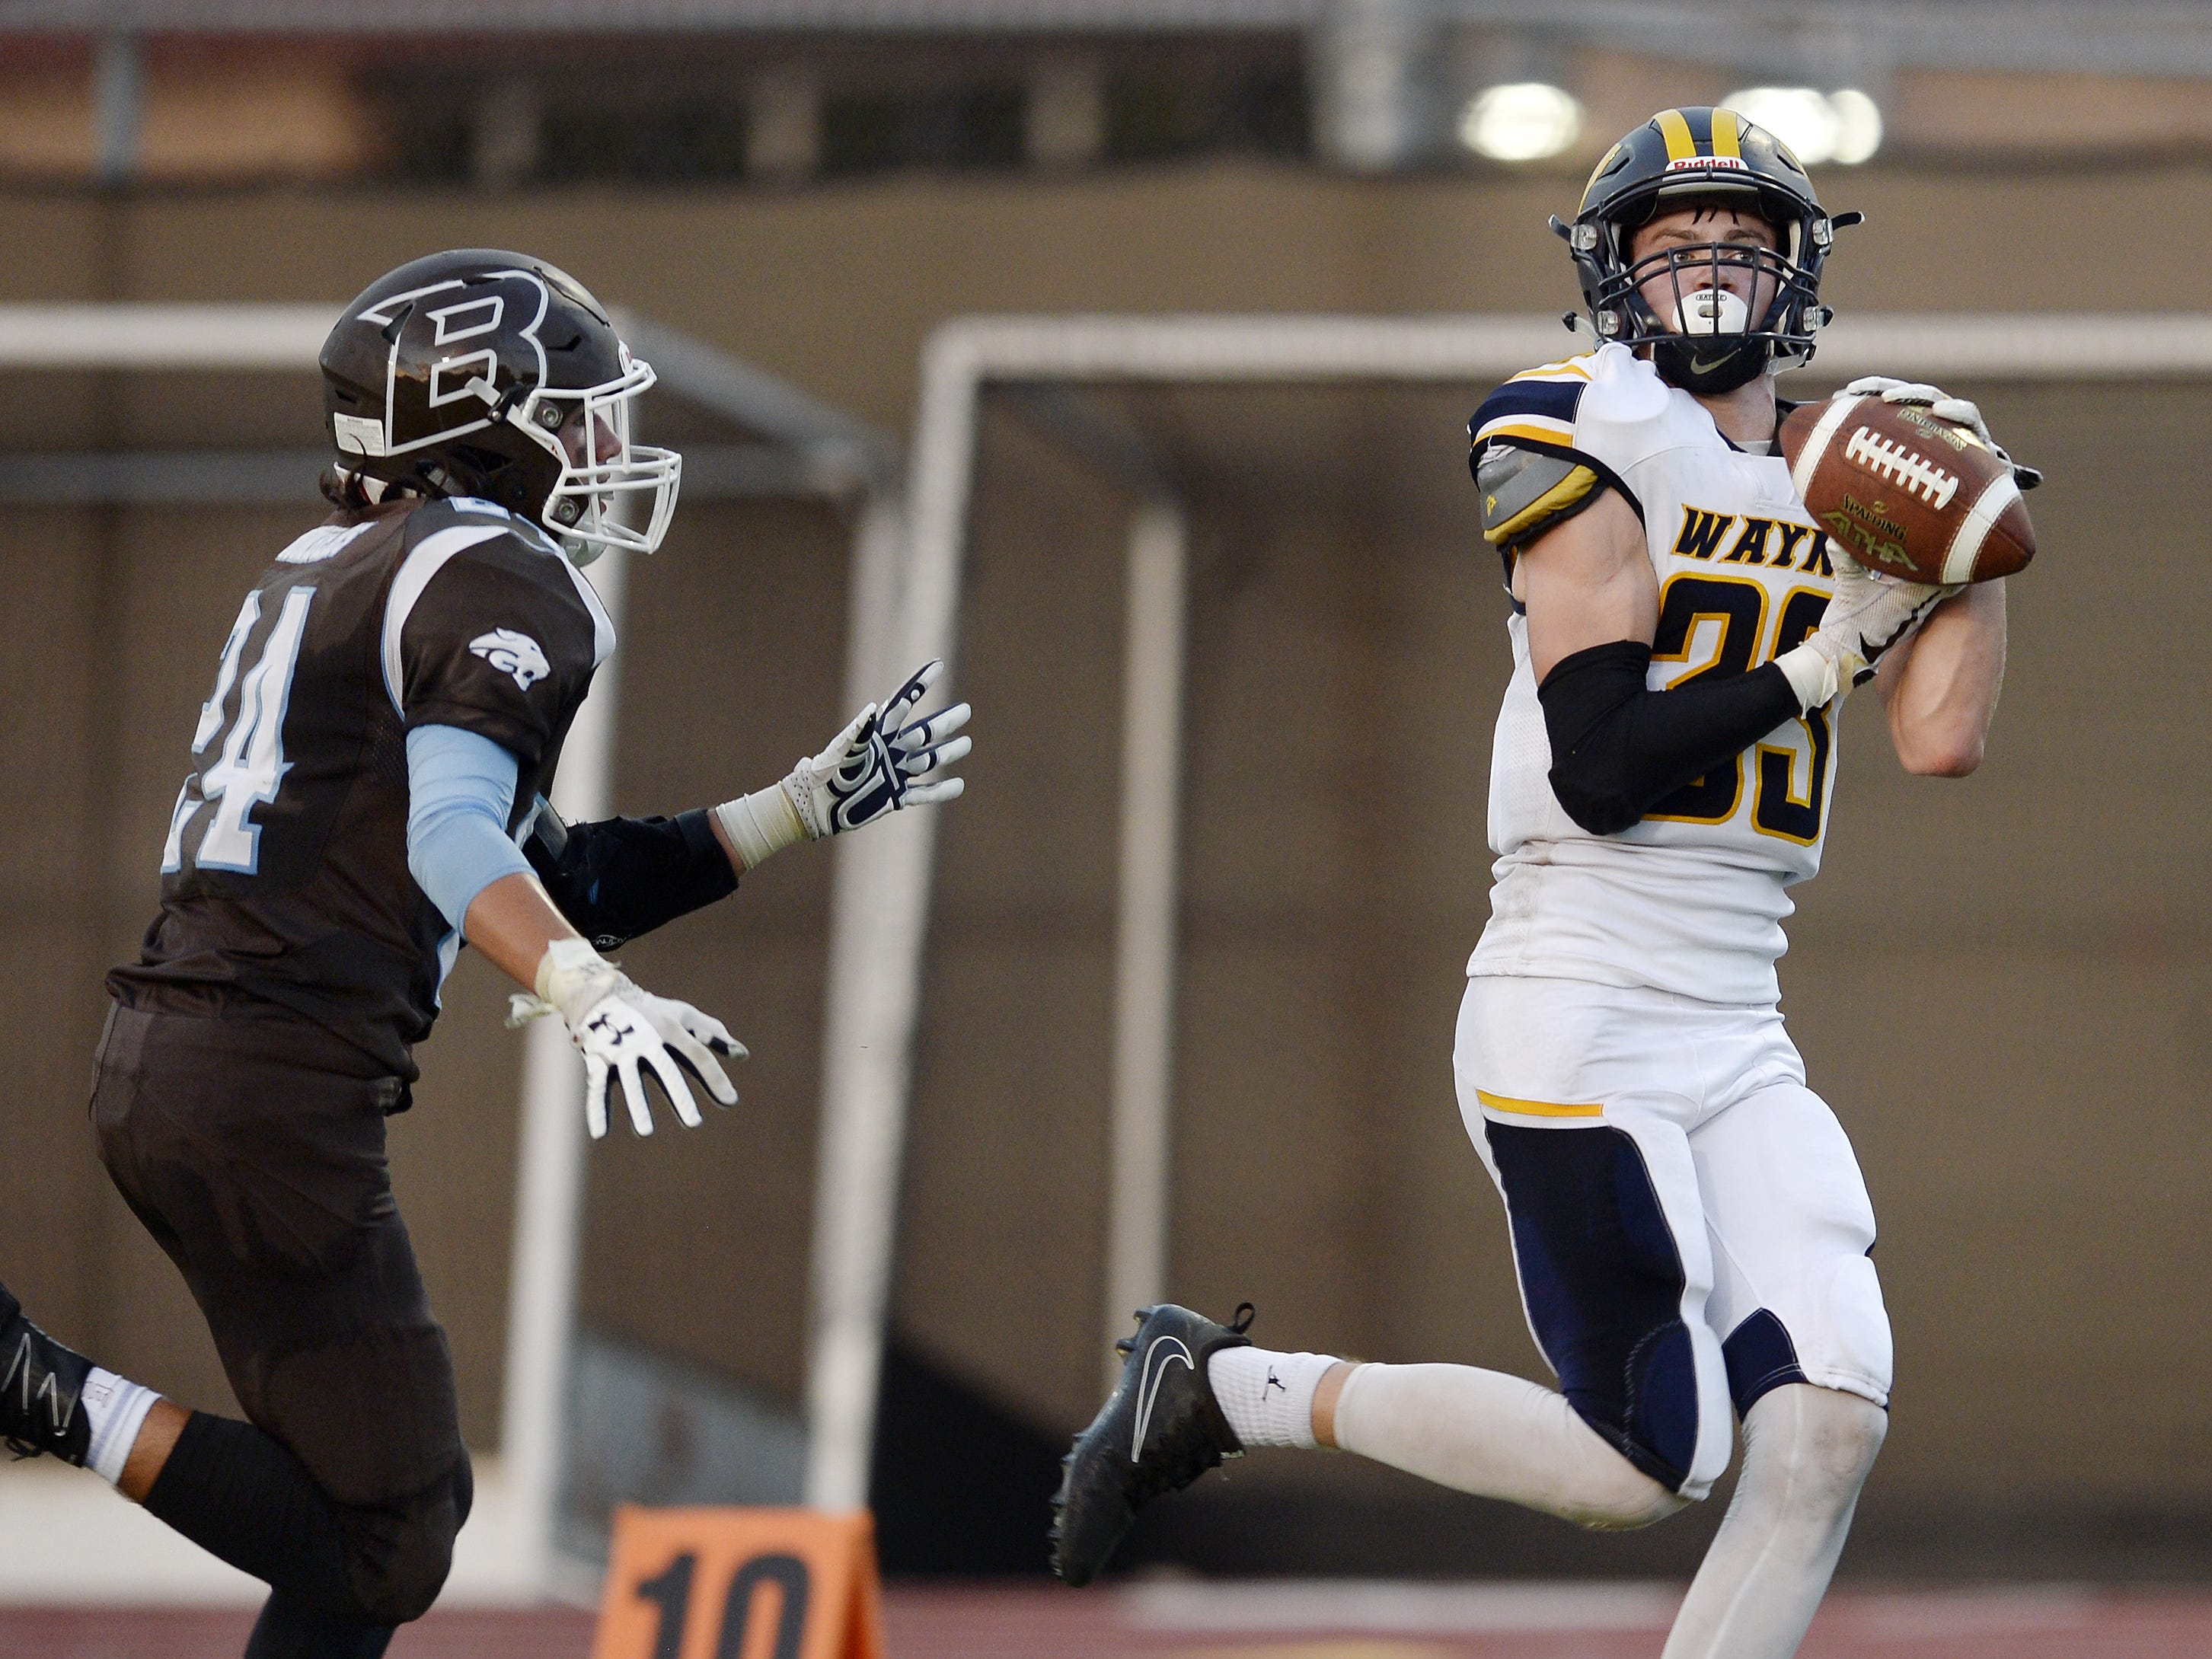 Who were the top performers in Section V football in Week 1?